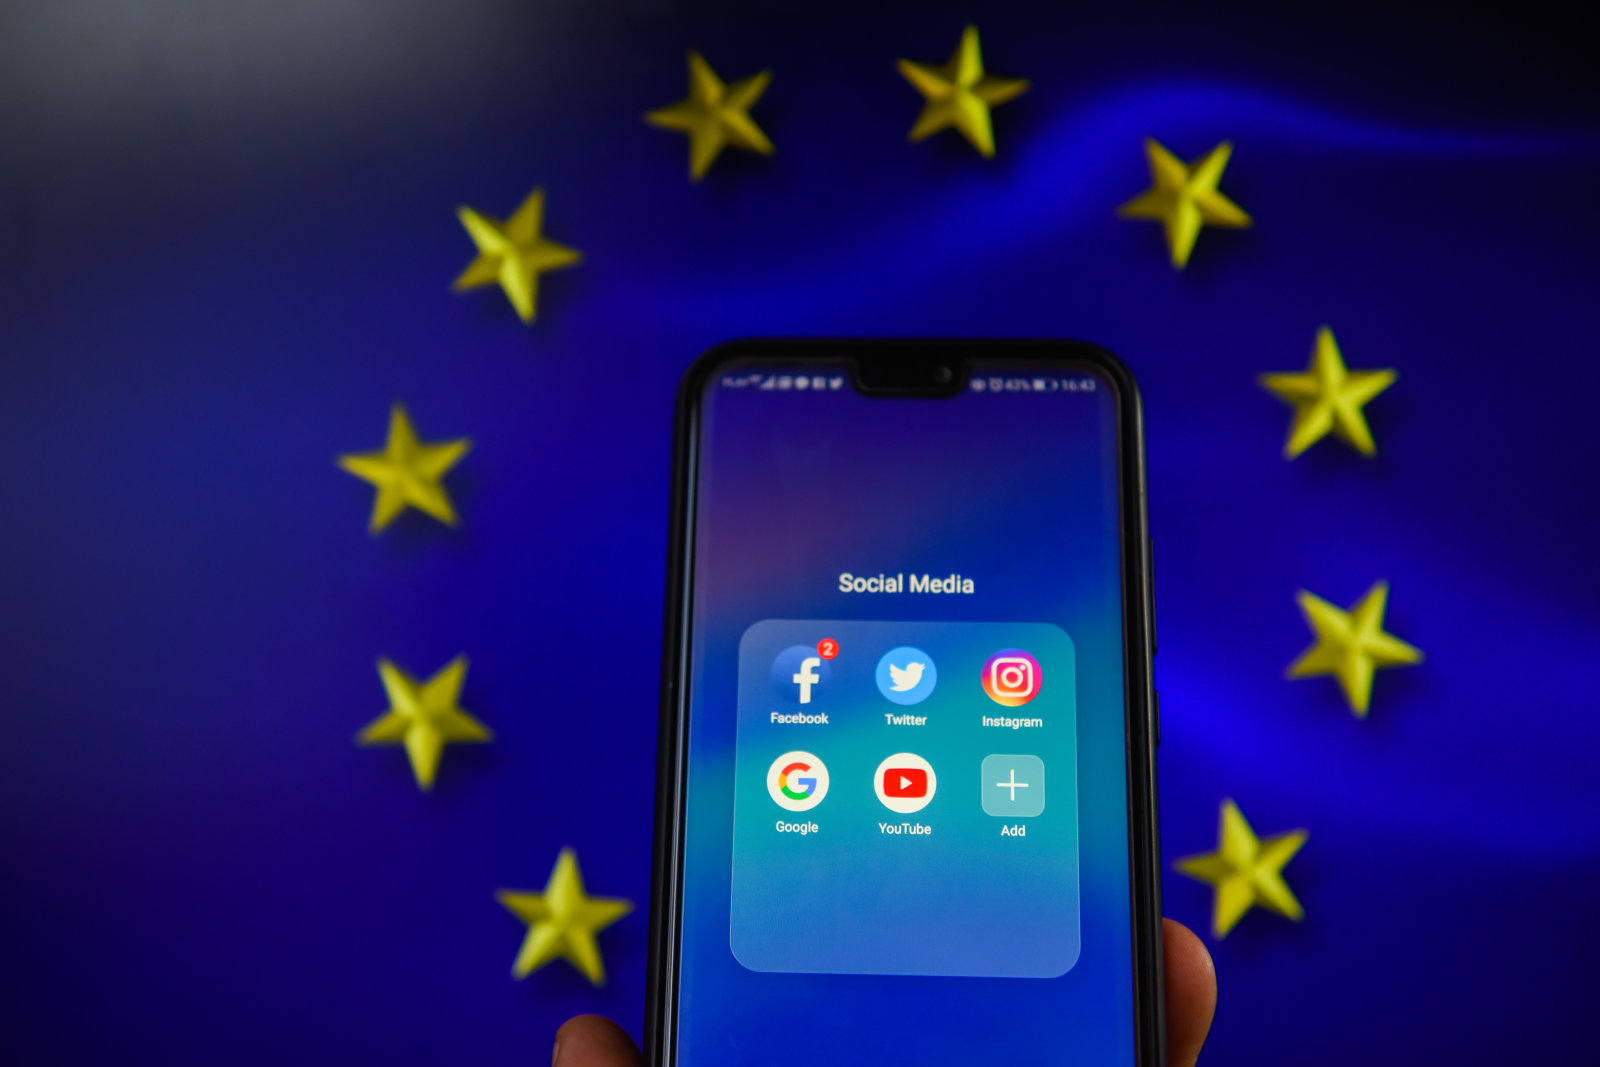 KRAKOW, POLAND - 2018/08/20: Social media apps with European Union flag are seen in this photo illustration. The European Commission is planning issue a regulation that allows to fine social media platforms and websites if they don't delete extremist post within one hour. (Photo by Omar Marques/SOPA Images/LightRocket via Getty Images)